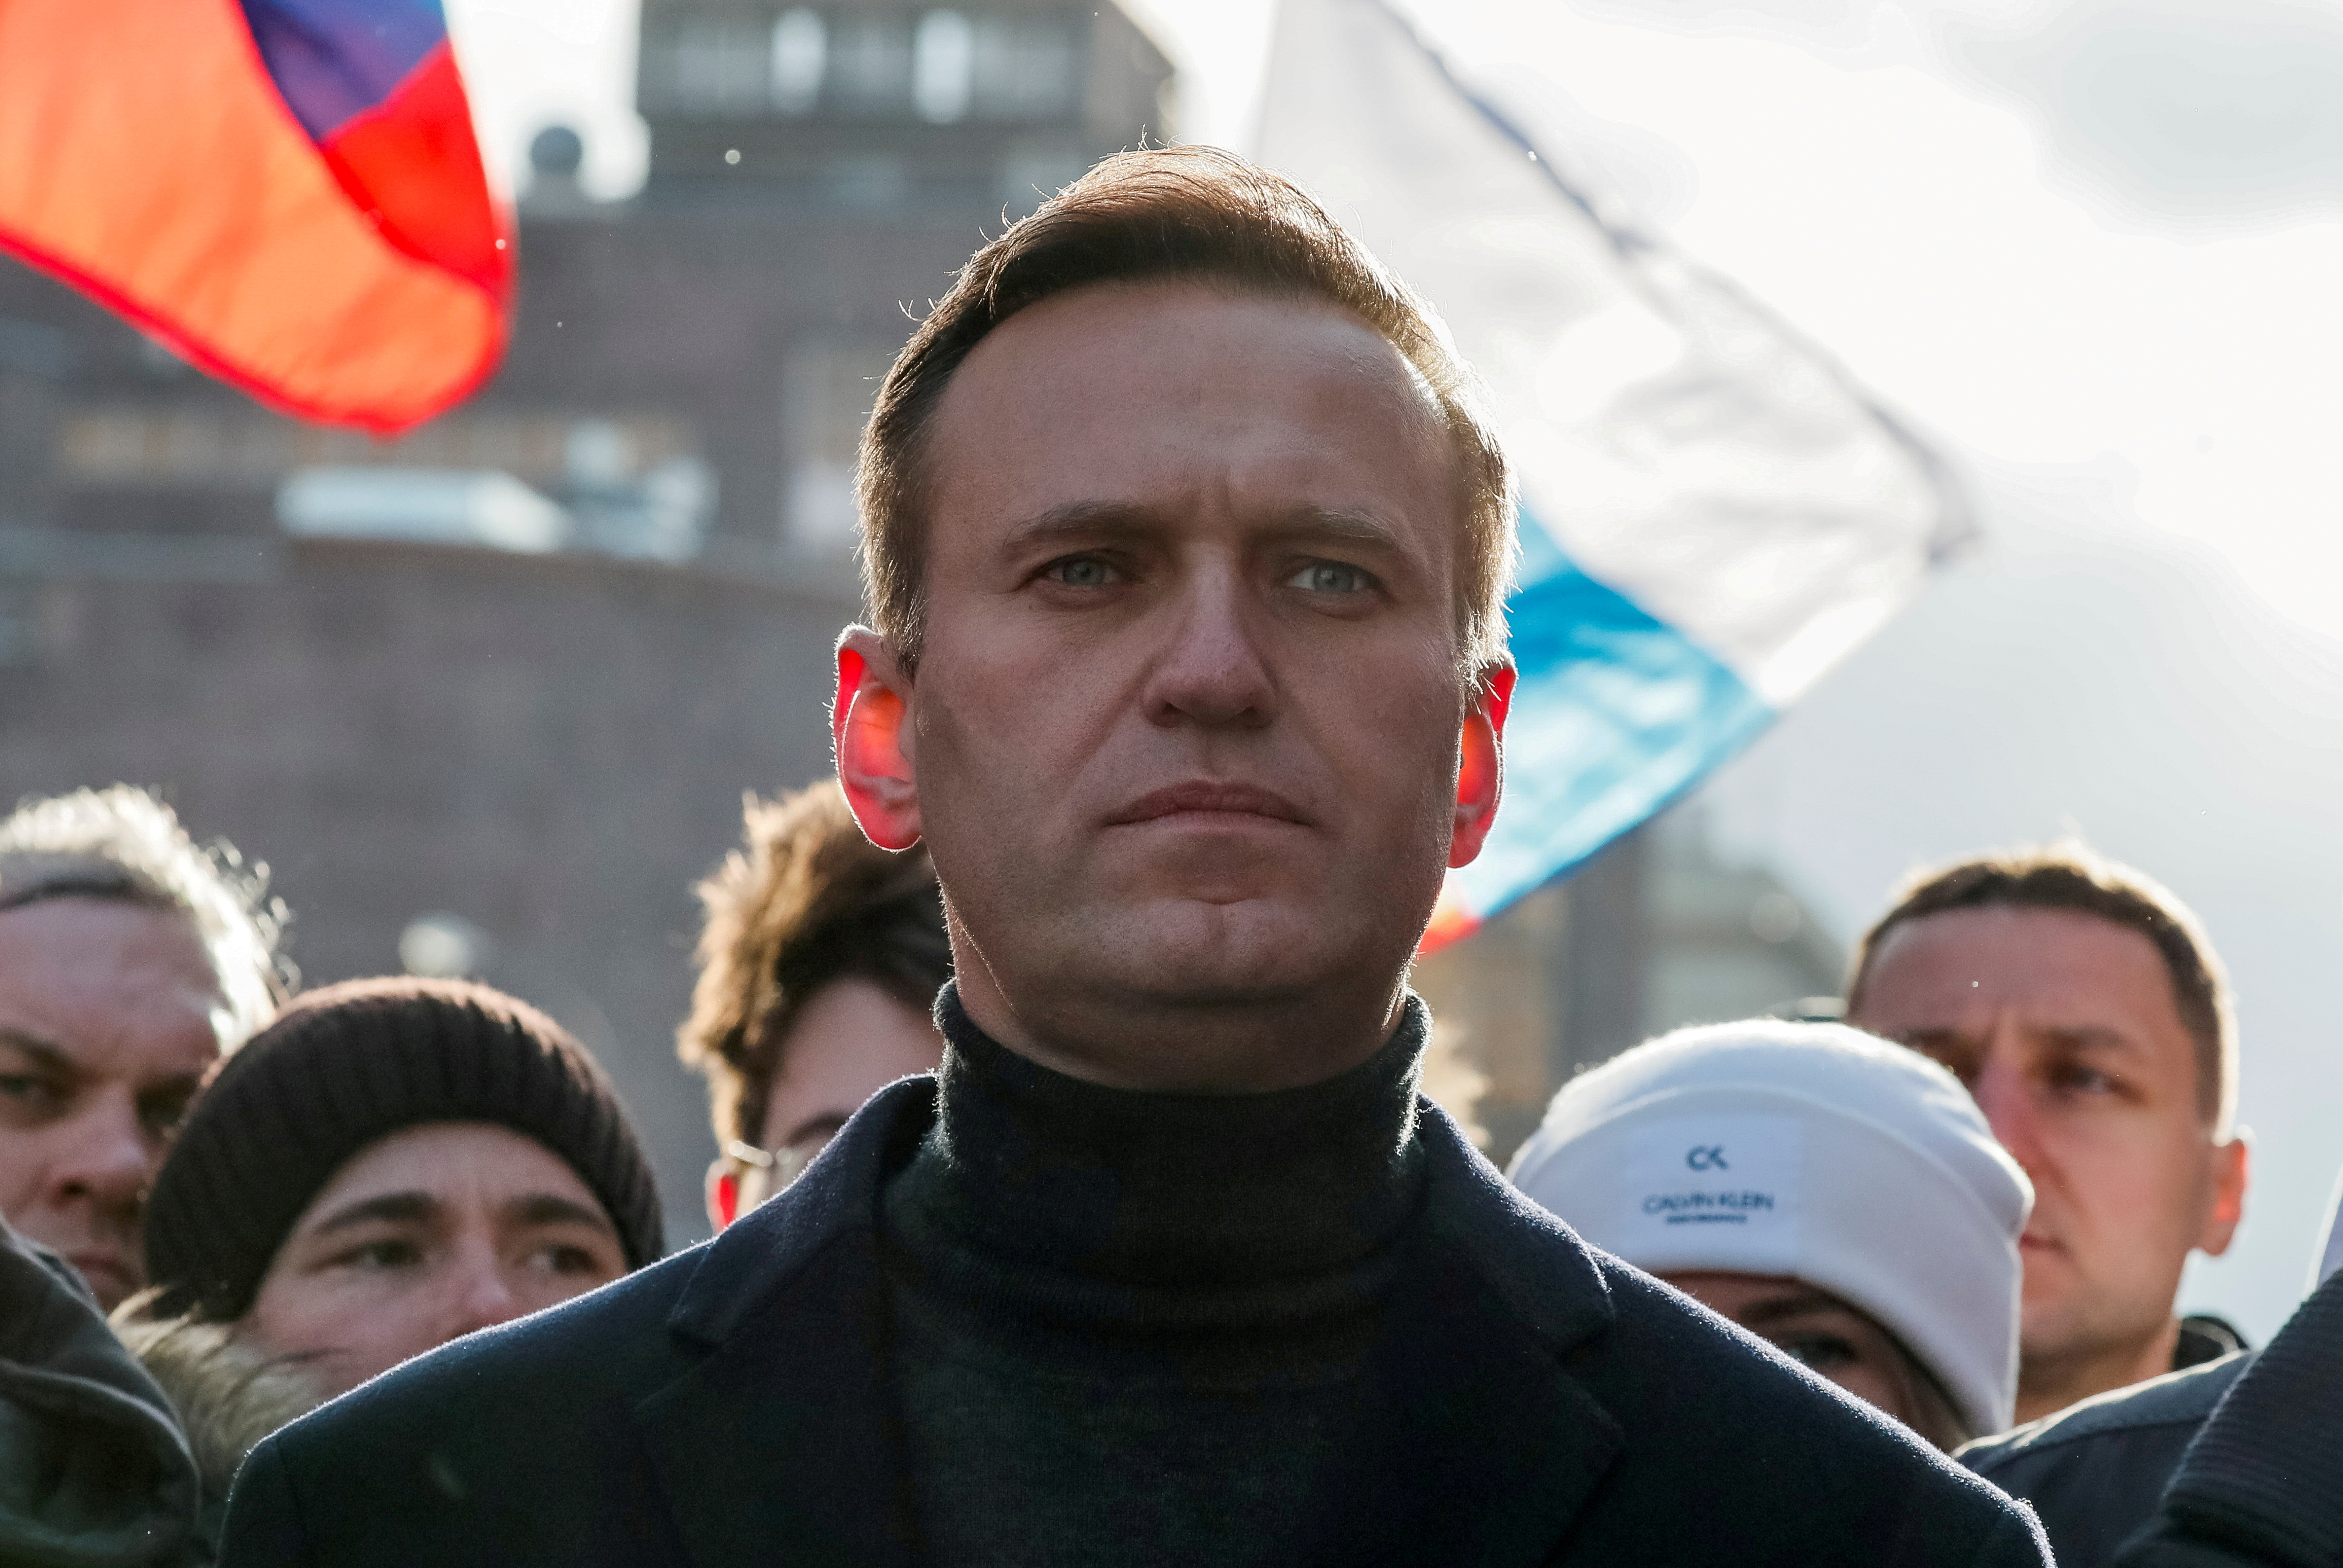 Russian opposition politician Alexei Navalny takes part in a rally to mark the 5th anniversary of opposition politician Boris Nemtsov's murder and to protest against proposed amendments to the country's constitution, in Moscow, Russia February 29, 2020. REUTERS/Shamil Zhumatov/File Photo